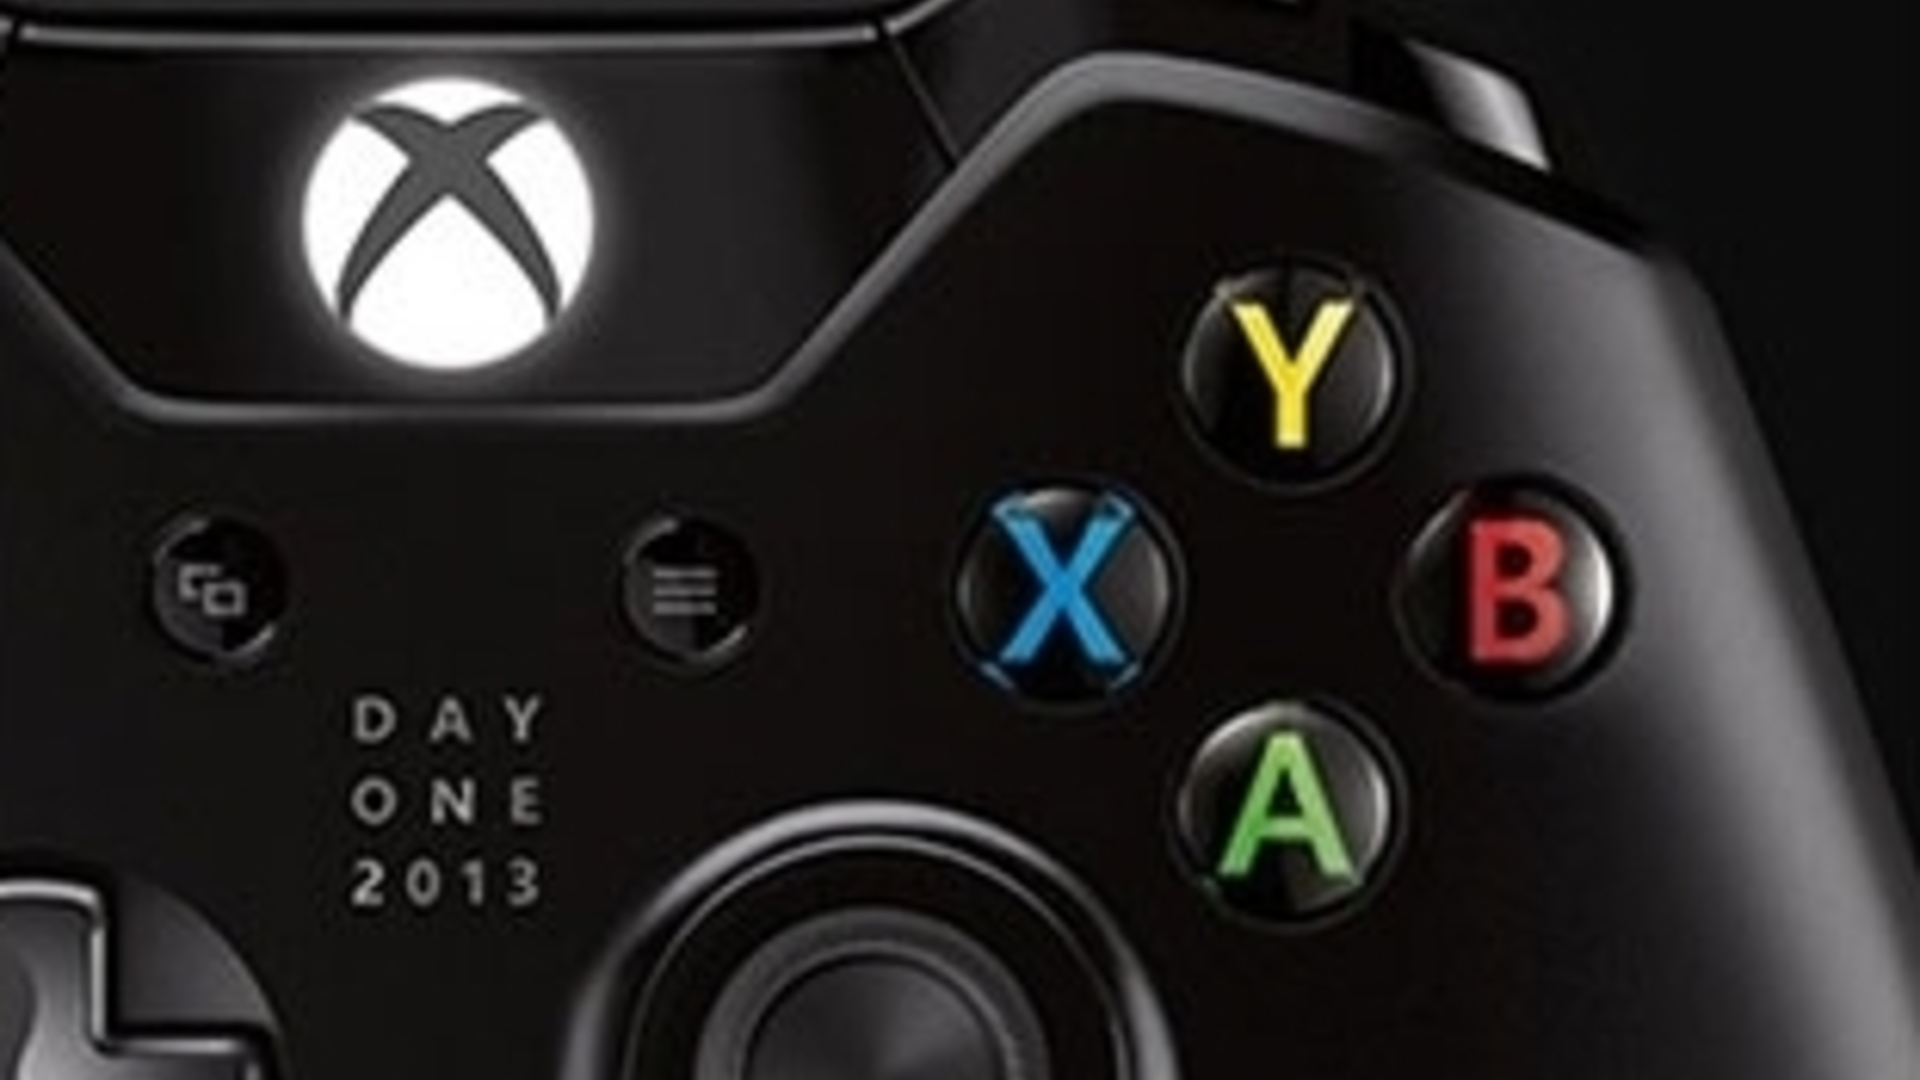 GAME closes Xbox One Day One Edition pre-orders